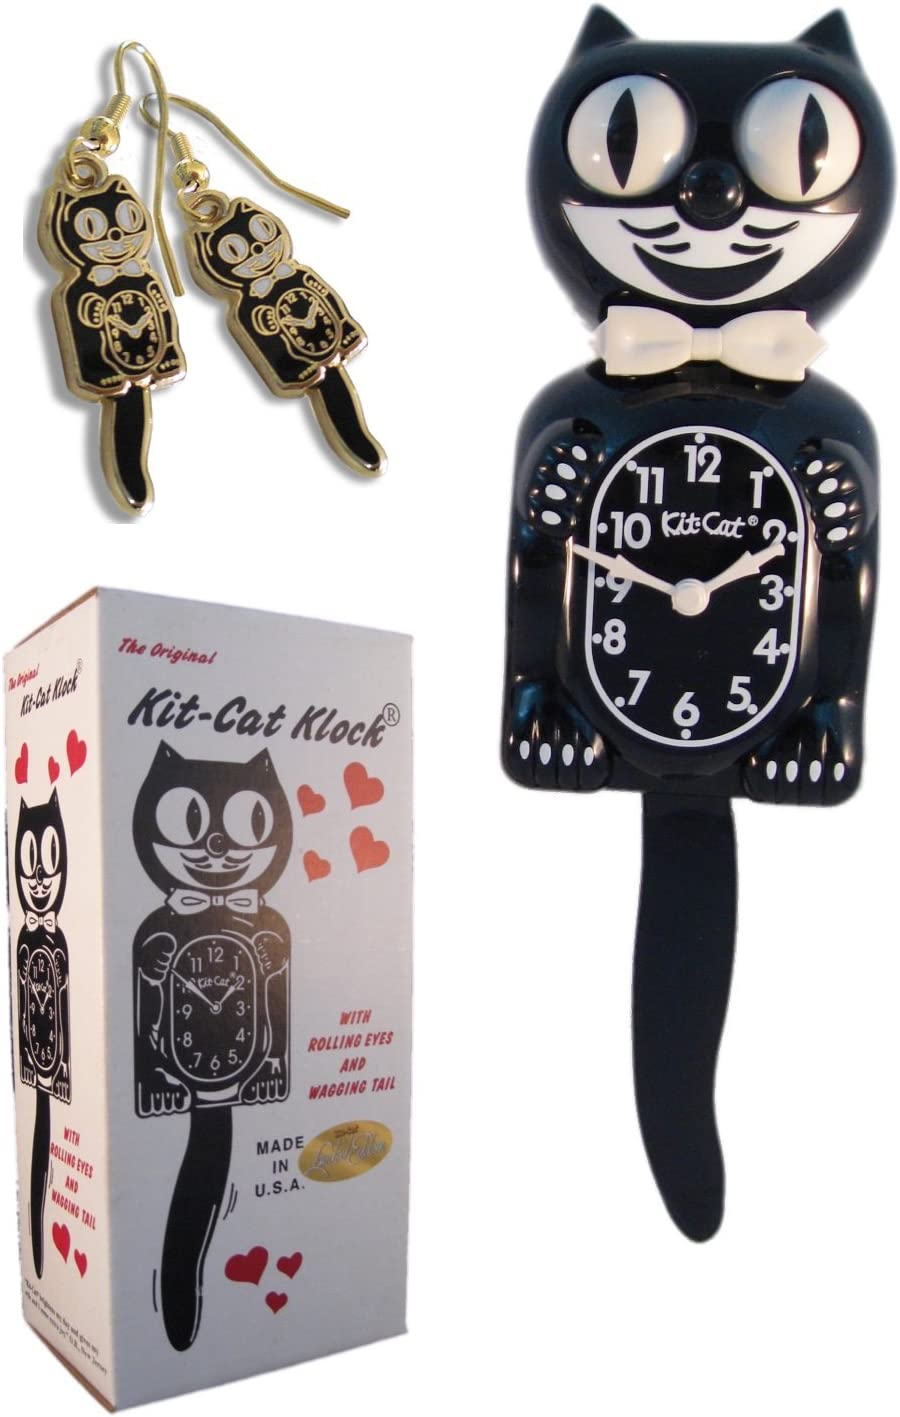 Kit Cat Klock Classic Vintage Black and Gold Black Earrings Set